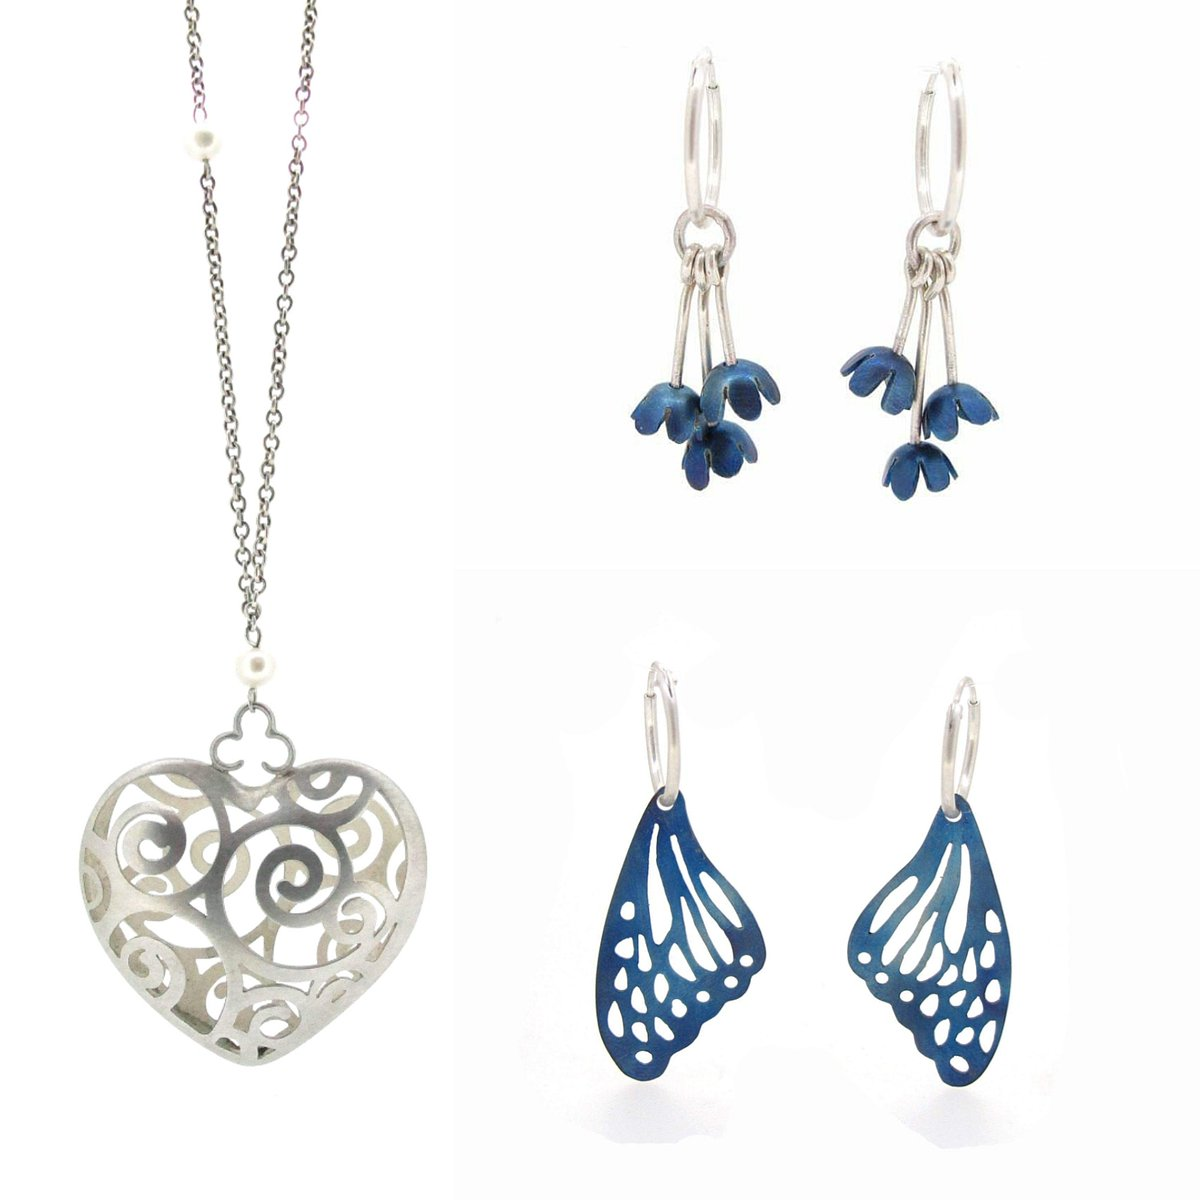 Alice's Heart, Forget Me Not Charm Hoops and Butterfly Wing Hoops by @SianBostwick 🤍🦋  @MwayOpenStudios #medwayopenstudios #openstudios #residentartist #studioartist #jeweller #jewellery #blue #butterfly #aliceinwonderland #forgetmenot #necklace #earrings #medway https://t.co/vHchir8gEL